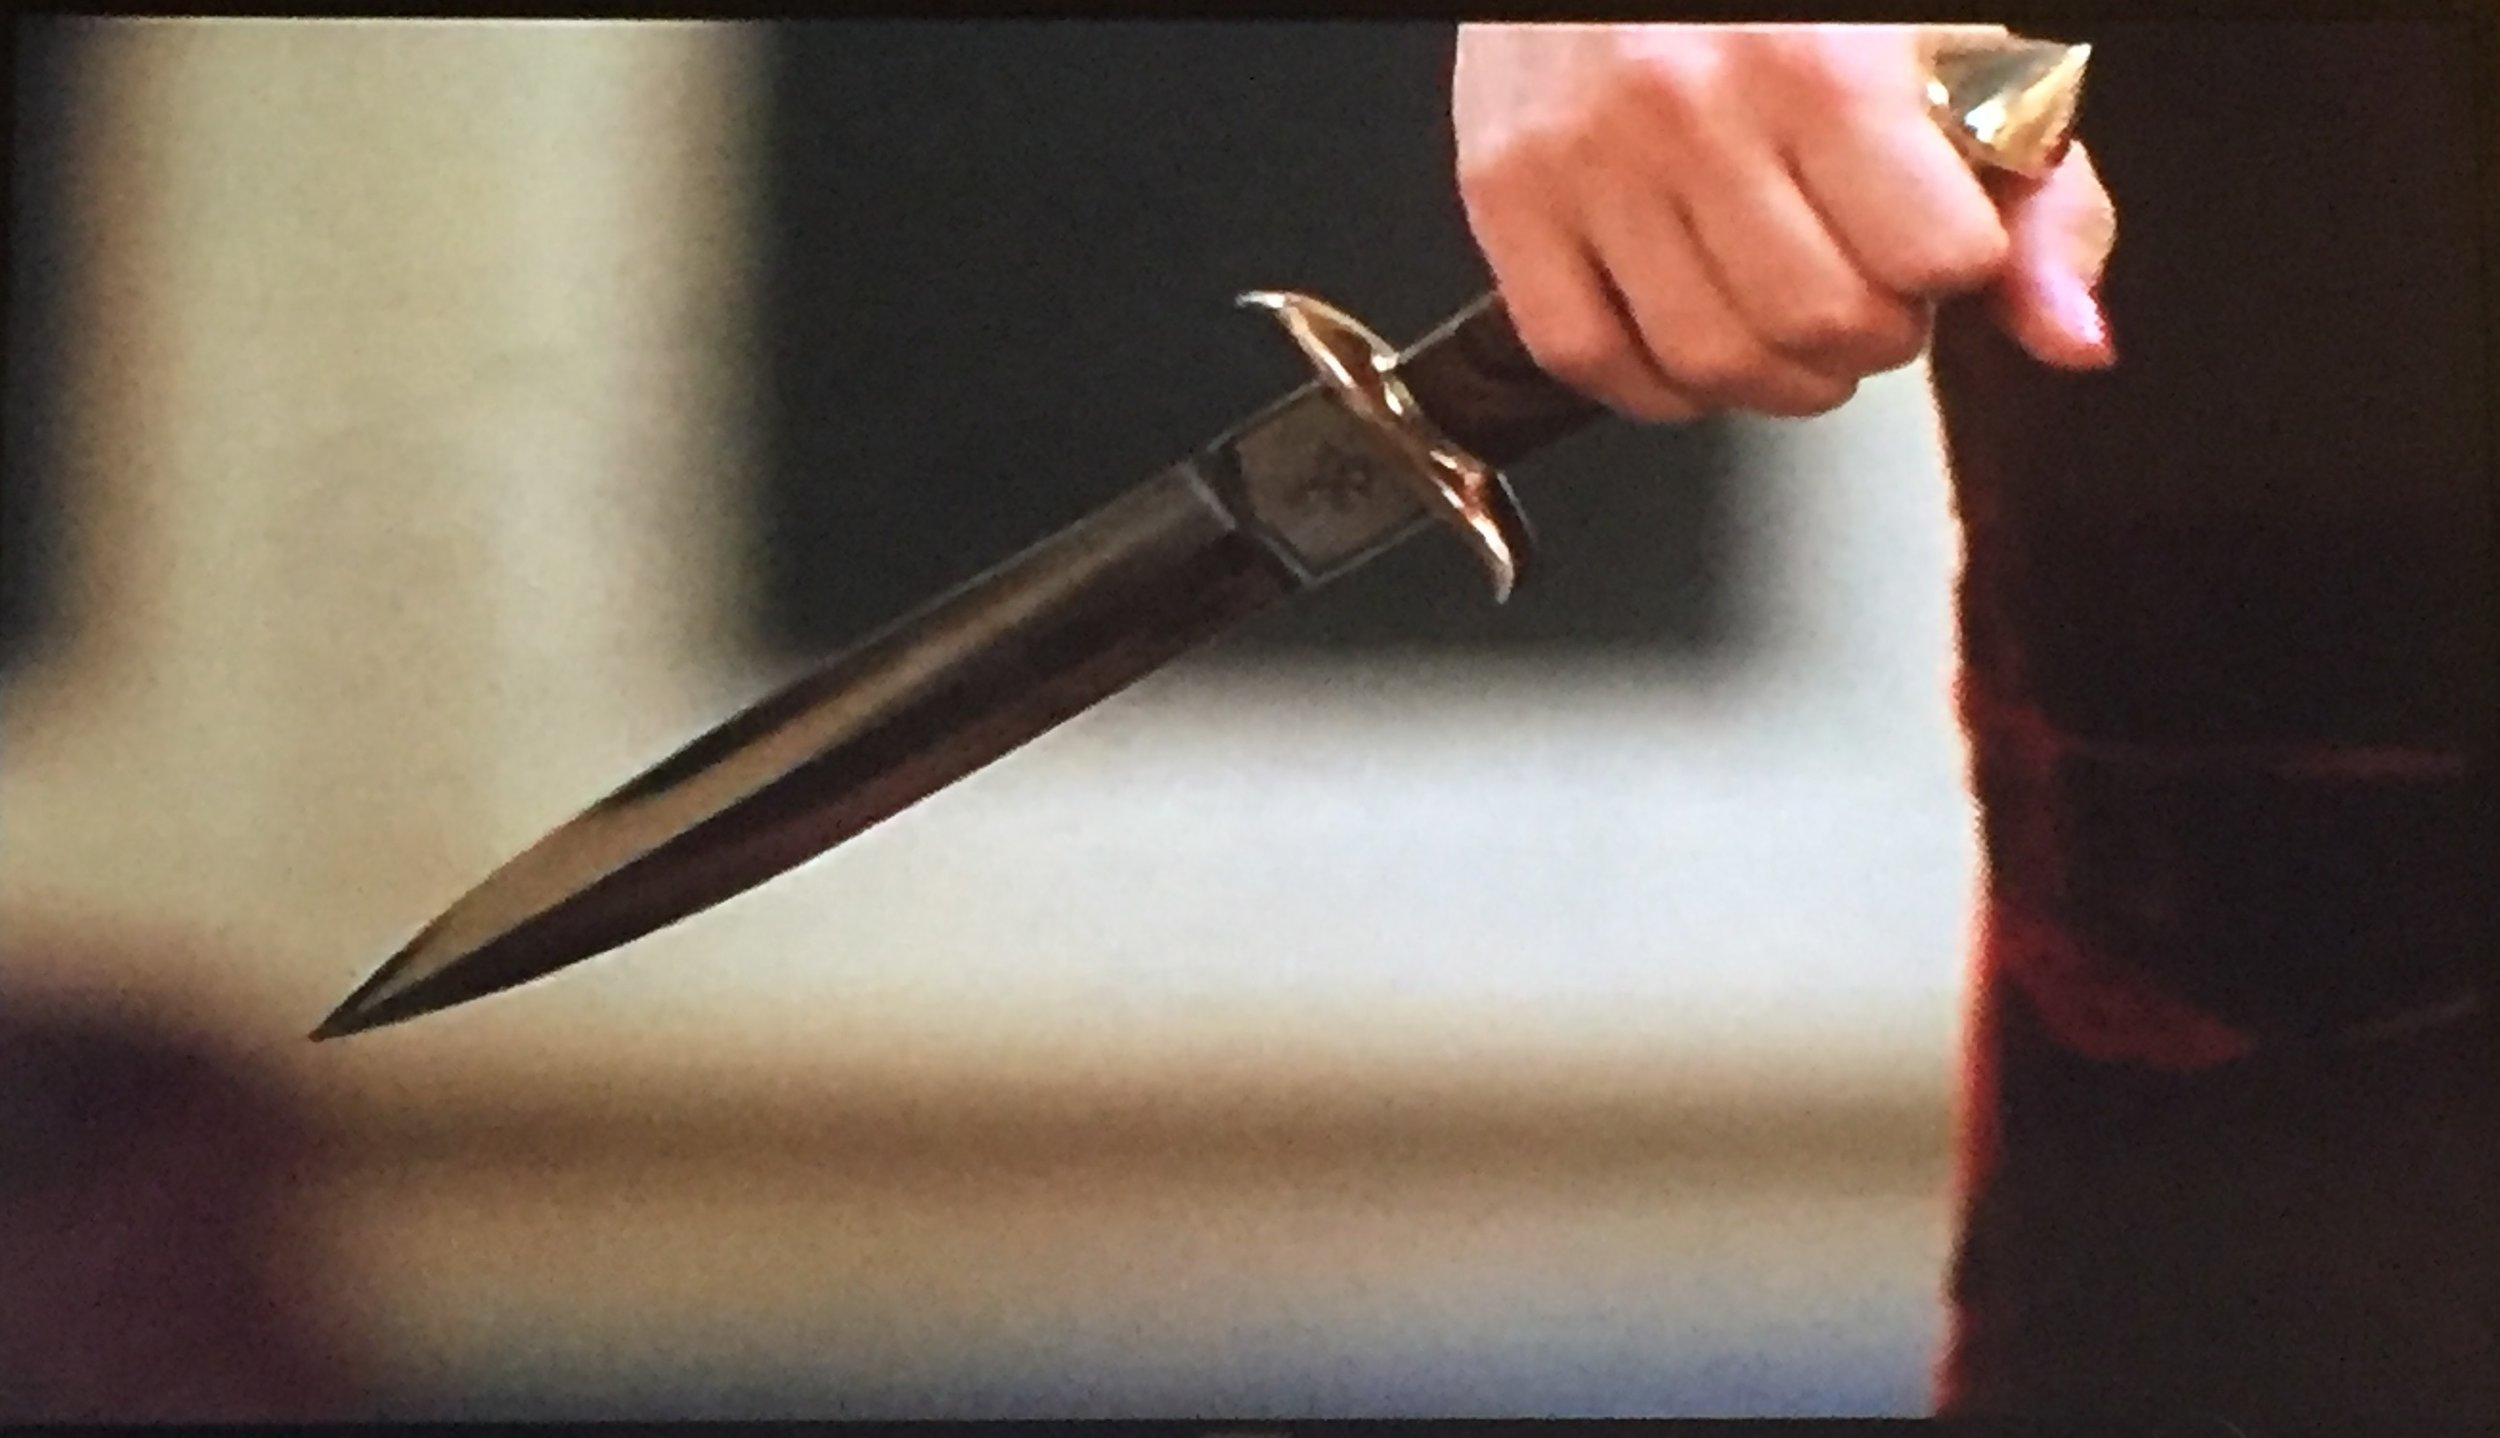 If it doesn't have a black handle, it's just a dagger.